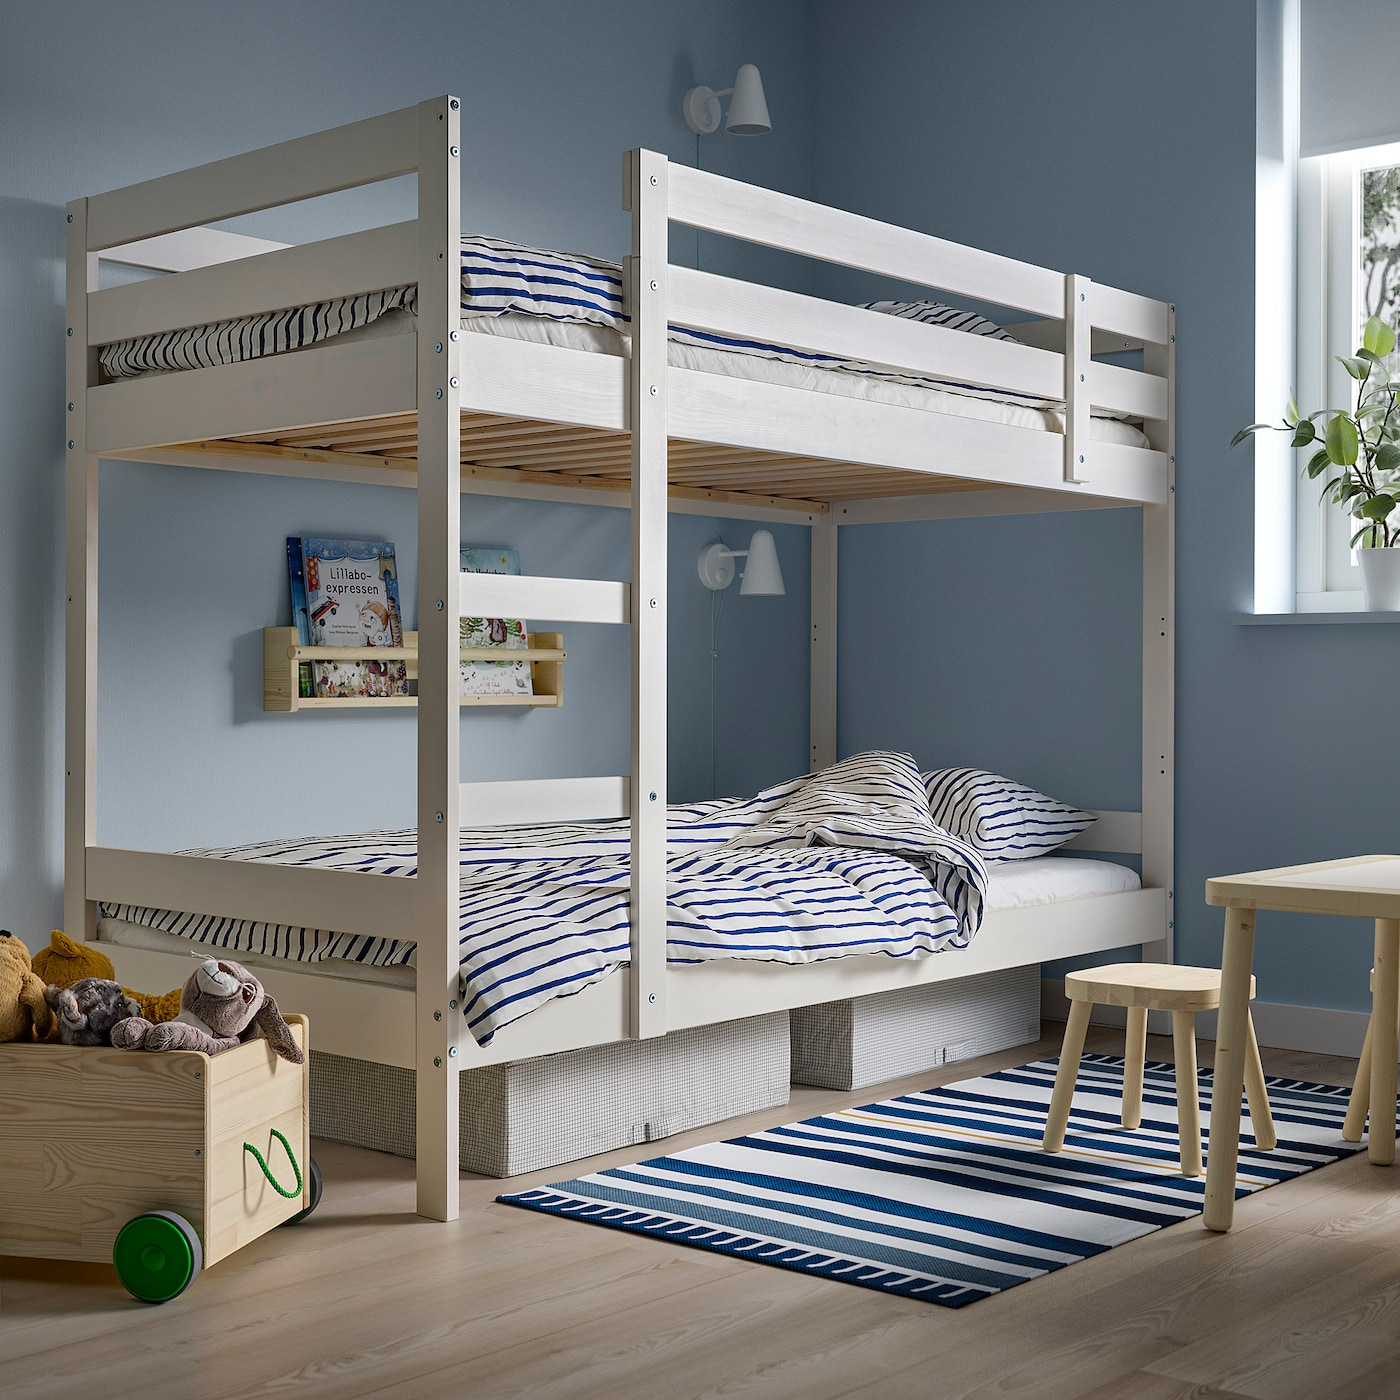 Picture of: Buy Mydal Bunk Bed Frame White Online Qatar Ikea